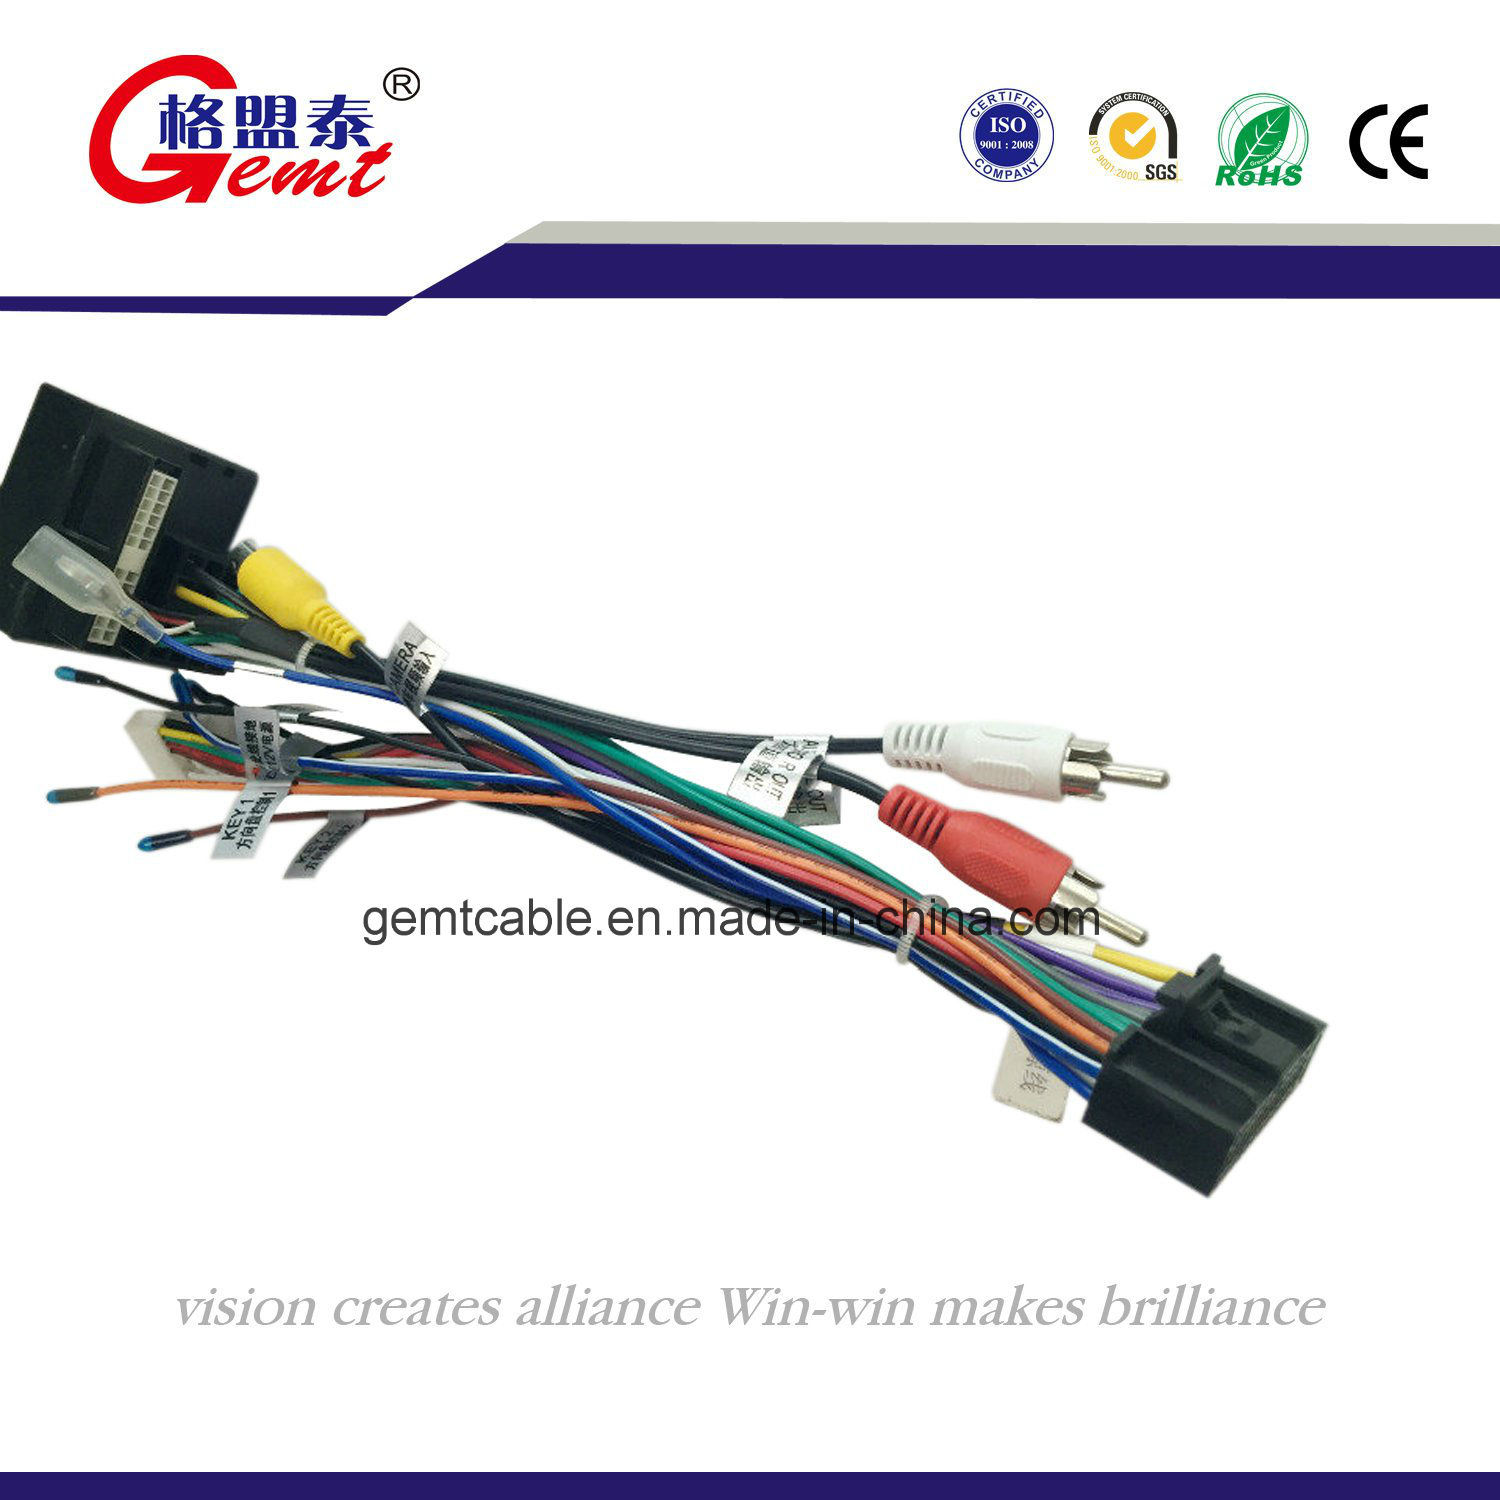 China Wiring Harness Psa Peugeot Citroen Extension Cord - China Auto Cable  Harness, Battery HarnessDONGGUAN GEMT CABLE CO., LTD.